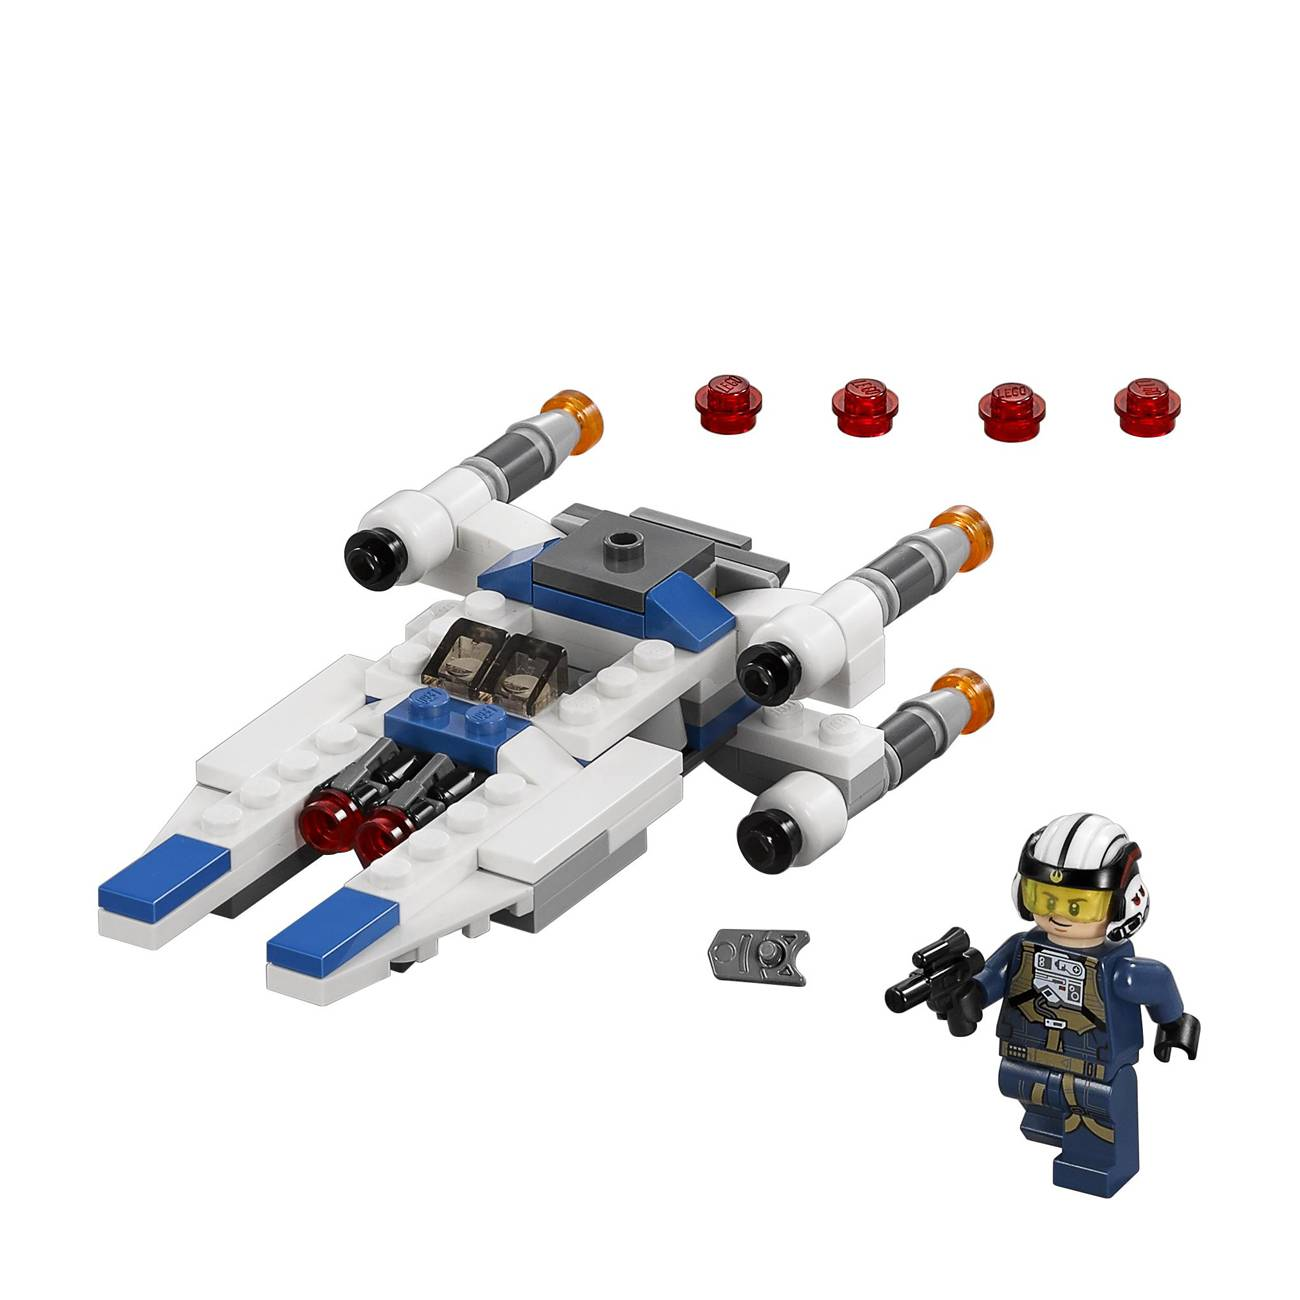 STAR WARS U-WING MICROFIGHTER